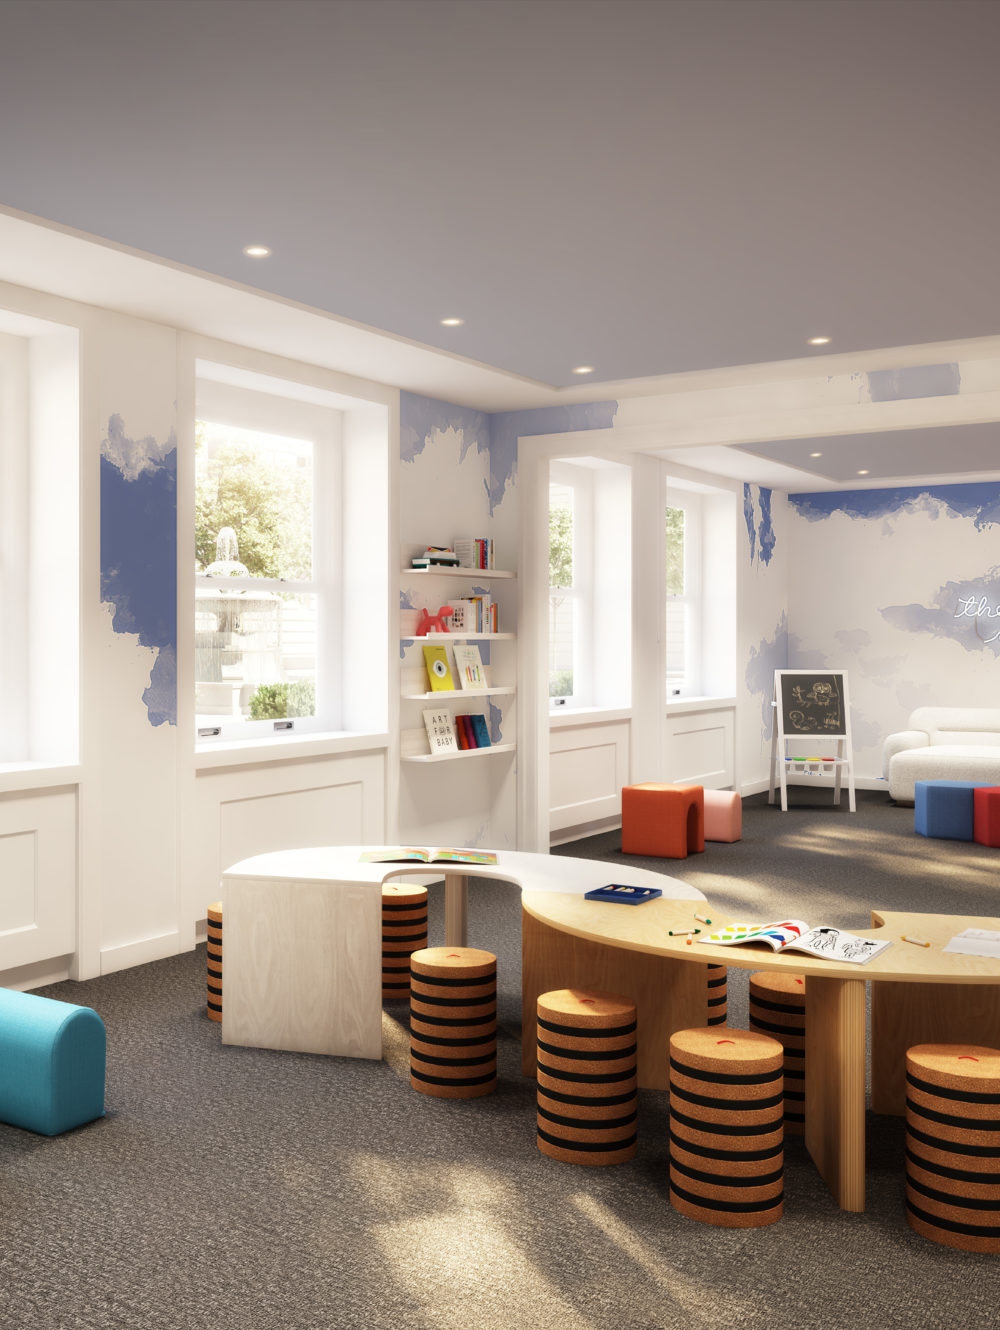 Kids lounge and playroom at The Belnord in New York. White walls with blue clouds, arts and crafts table, and play area.